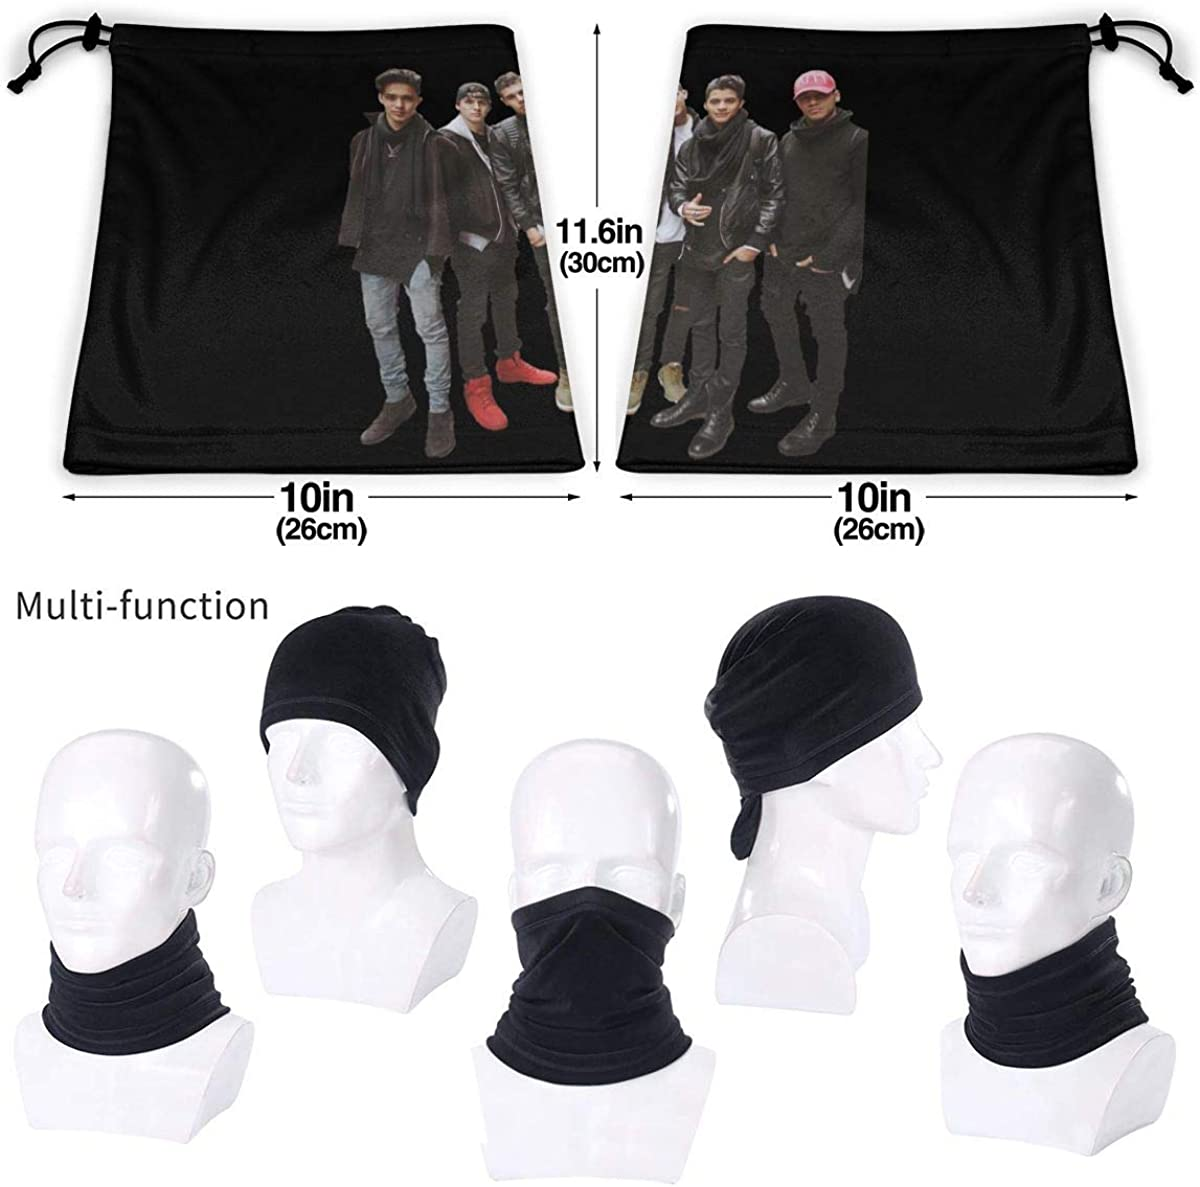 CNCO Highly Elastic Warm Microfiber Neck Thermal Mask Scarf Unisex Windproof Suitable For Winter